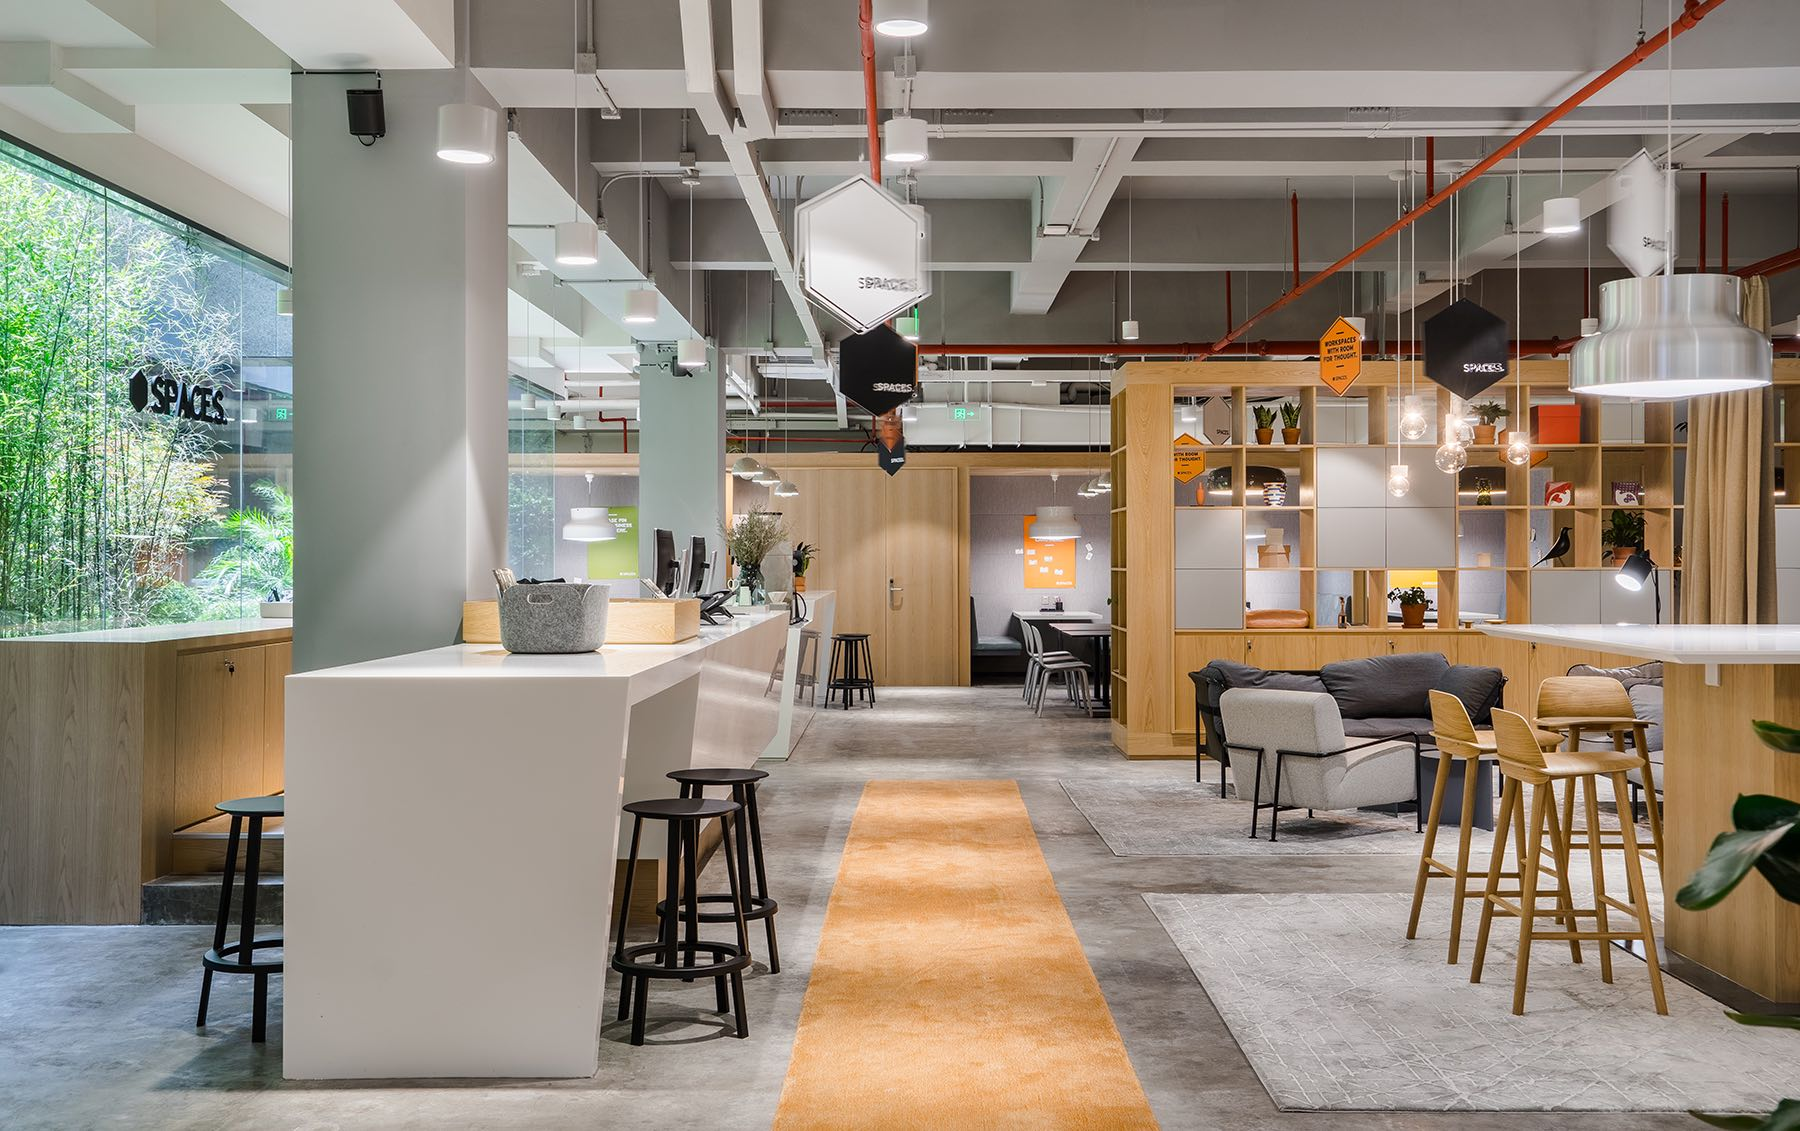 A Look Inside Spaces' Shanghai Coworking Space